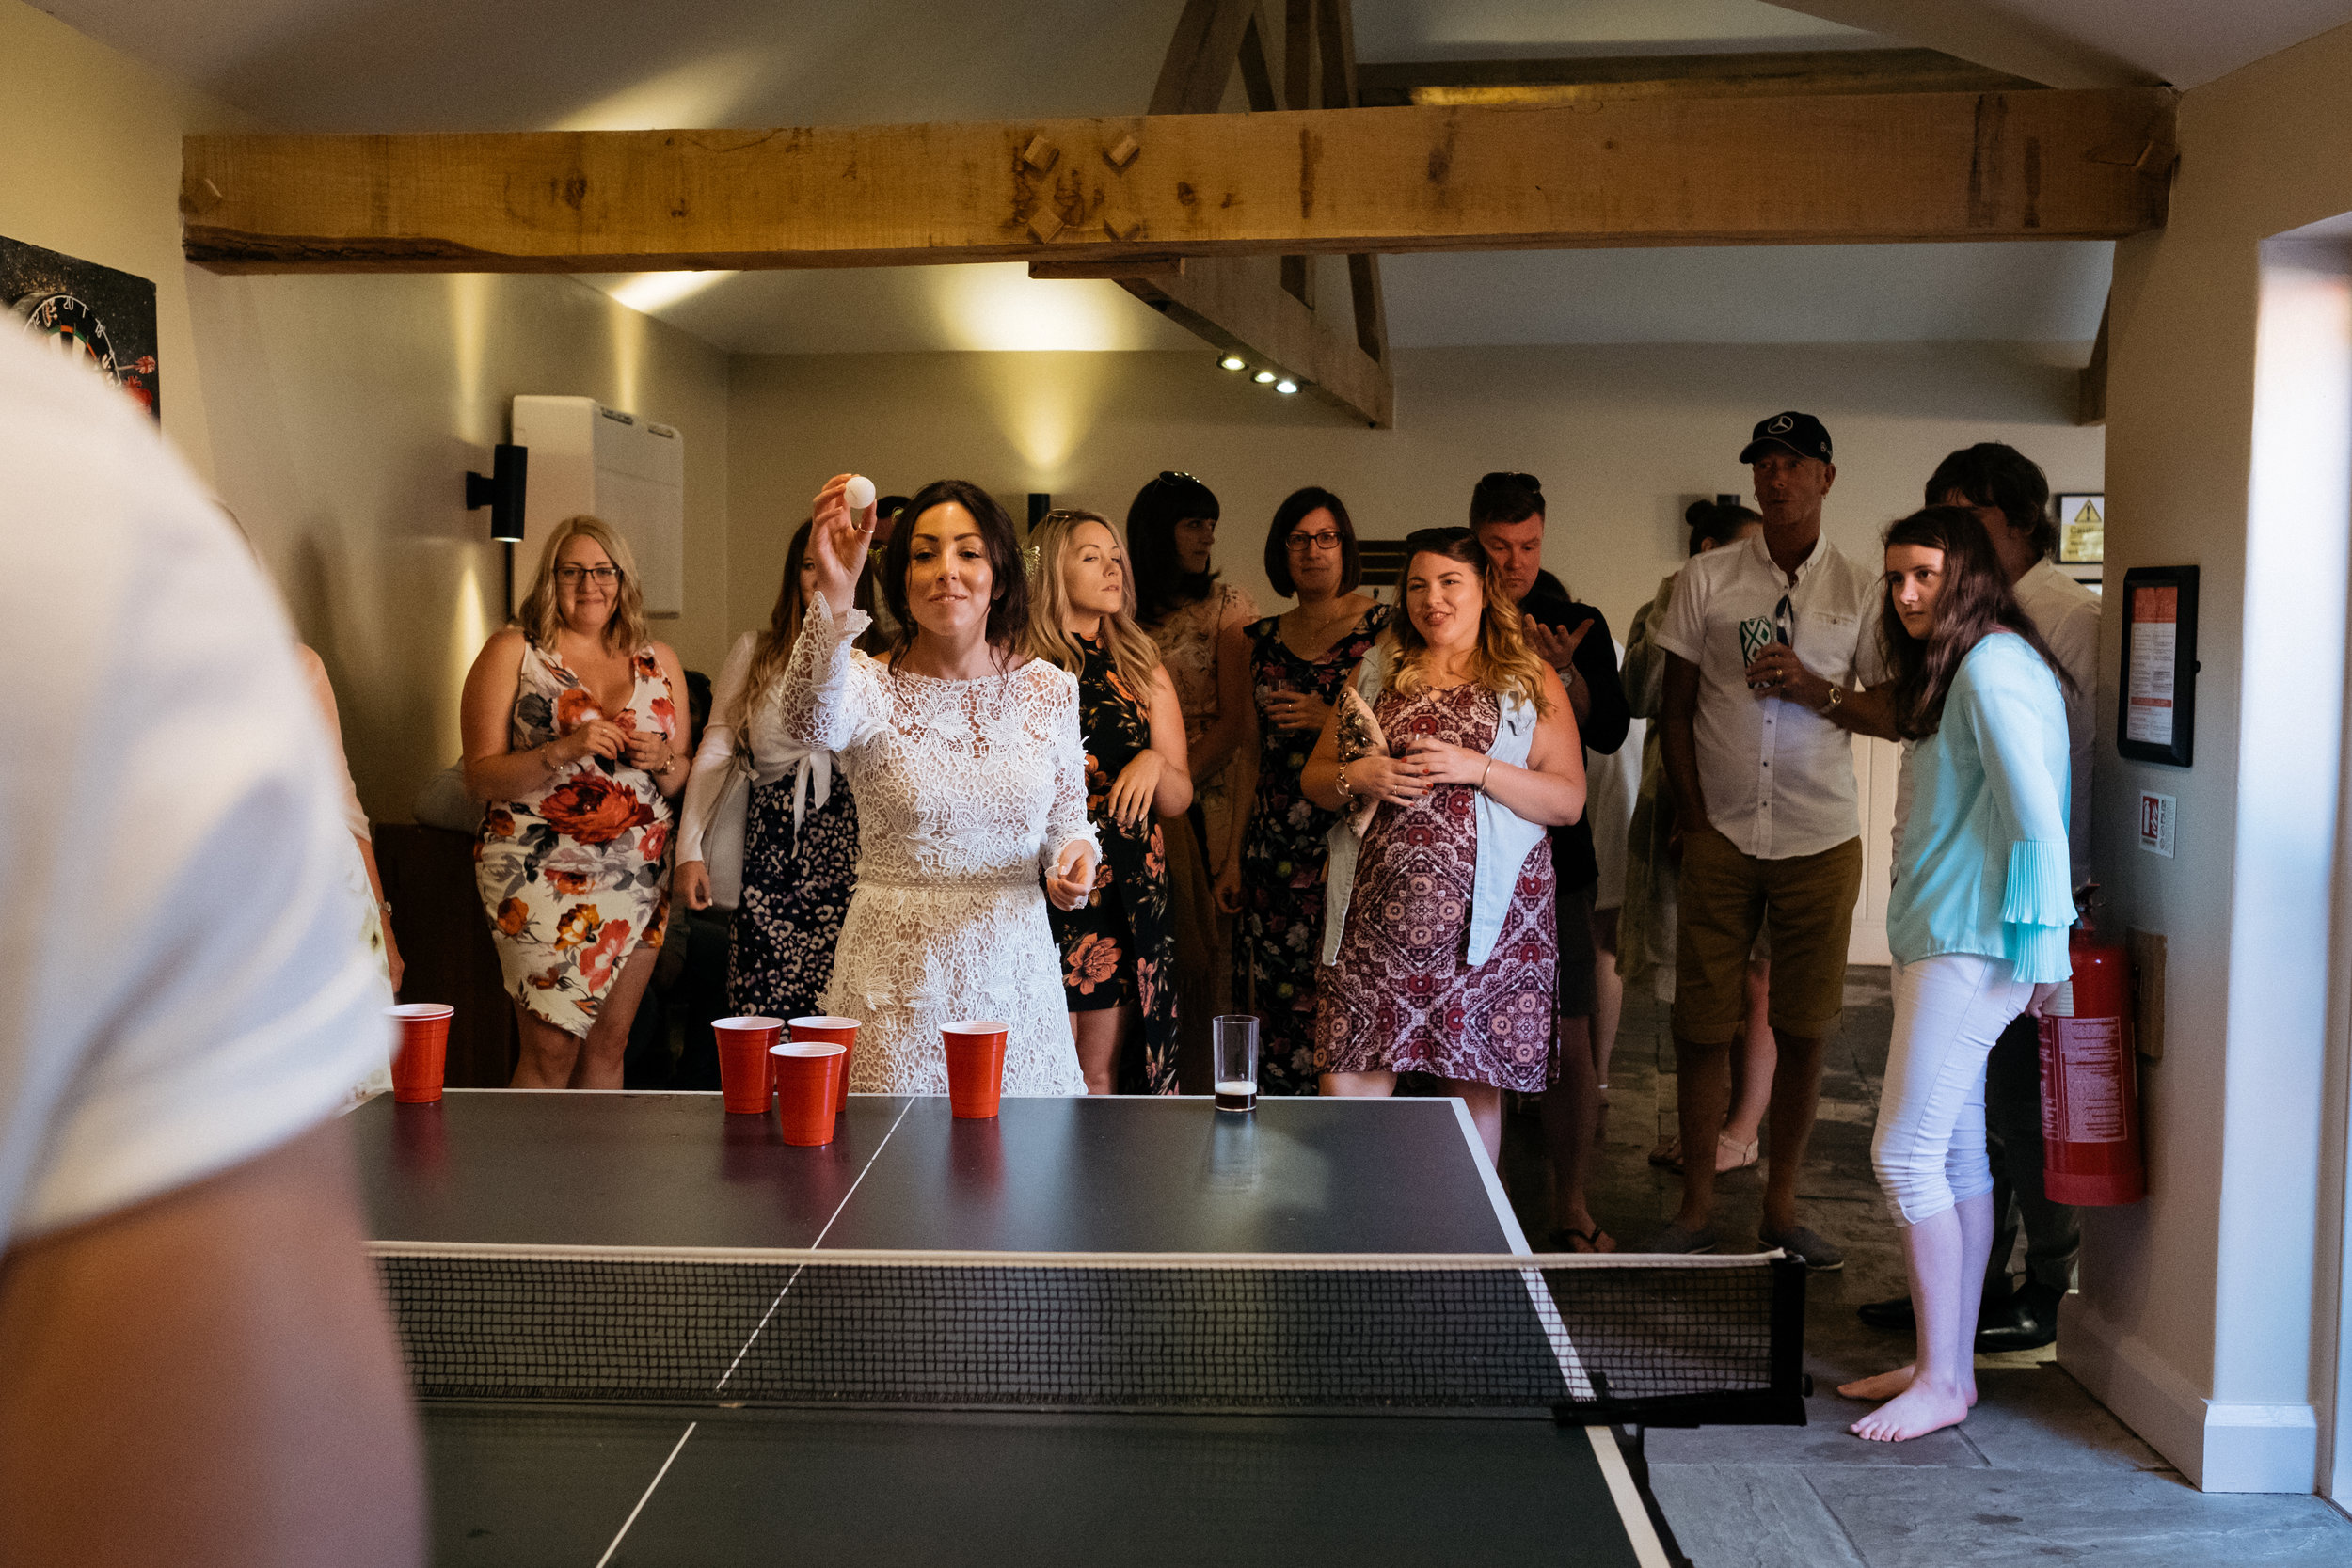 Bride plays beer pong during wedding